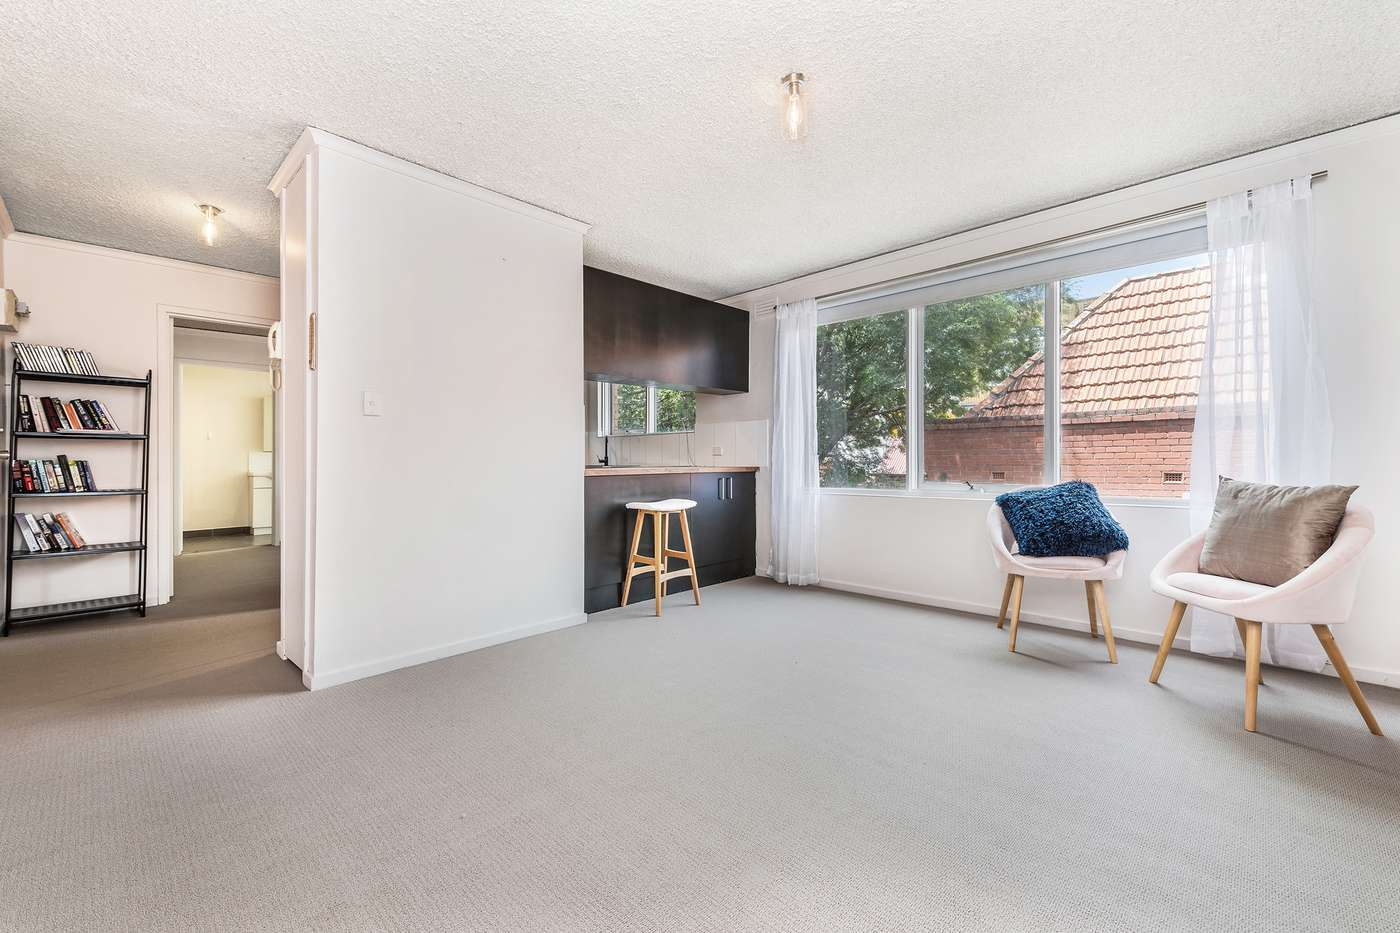 Main view of Homely apartment listing, 3/815 Park Street, Brunswick, VIC 3056